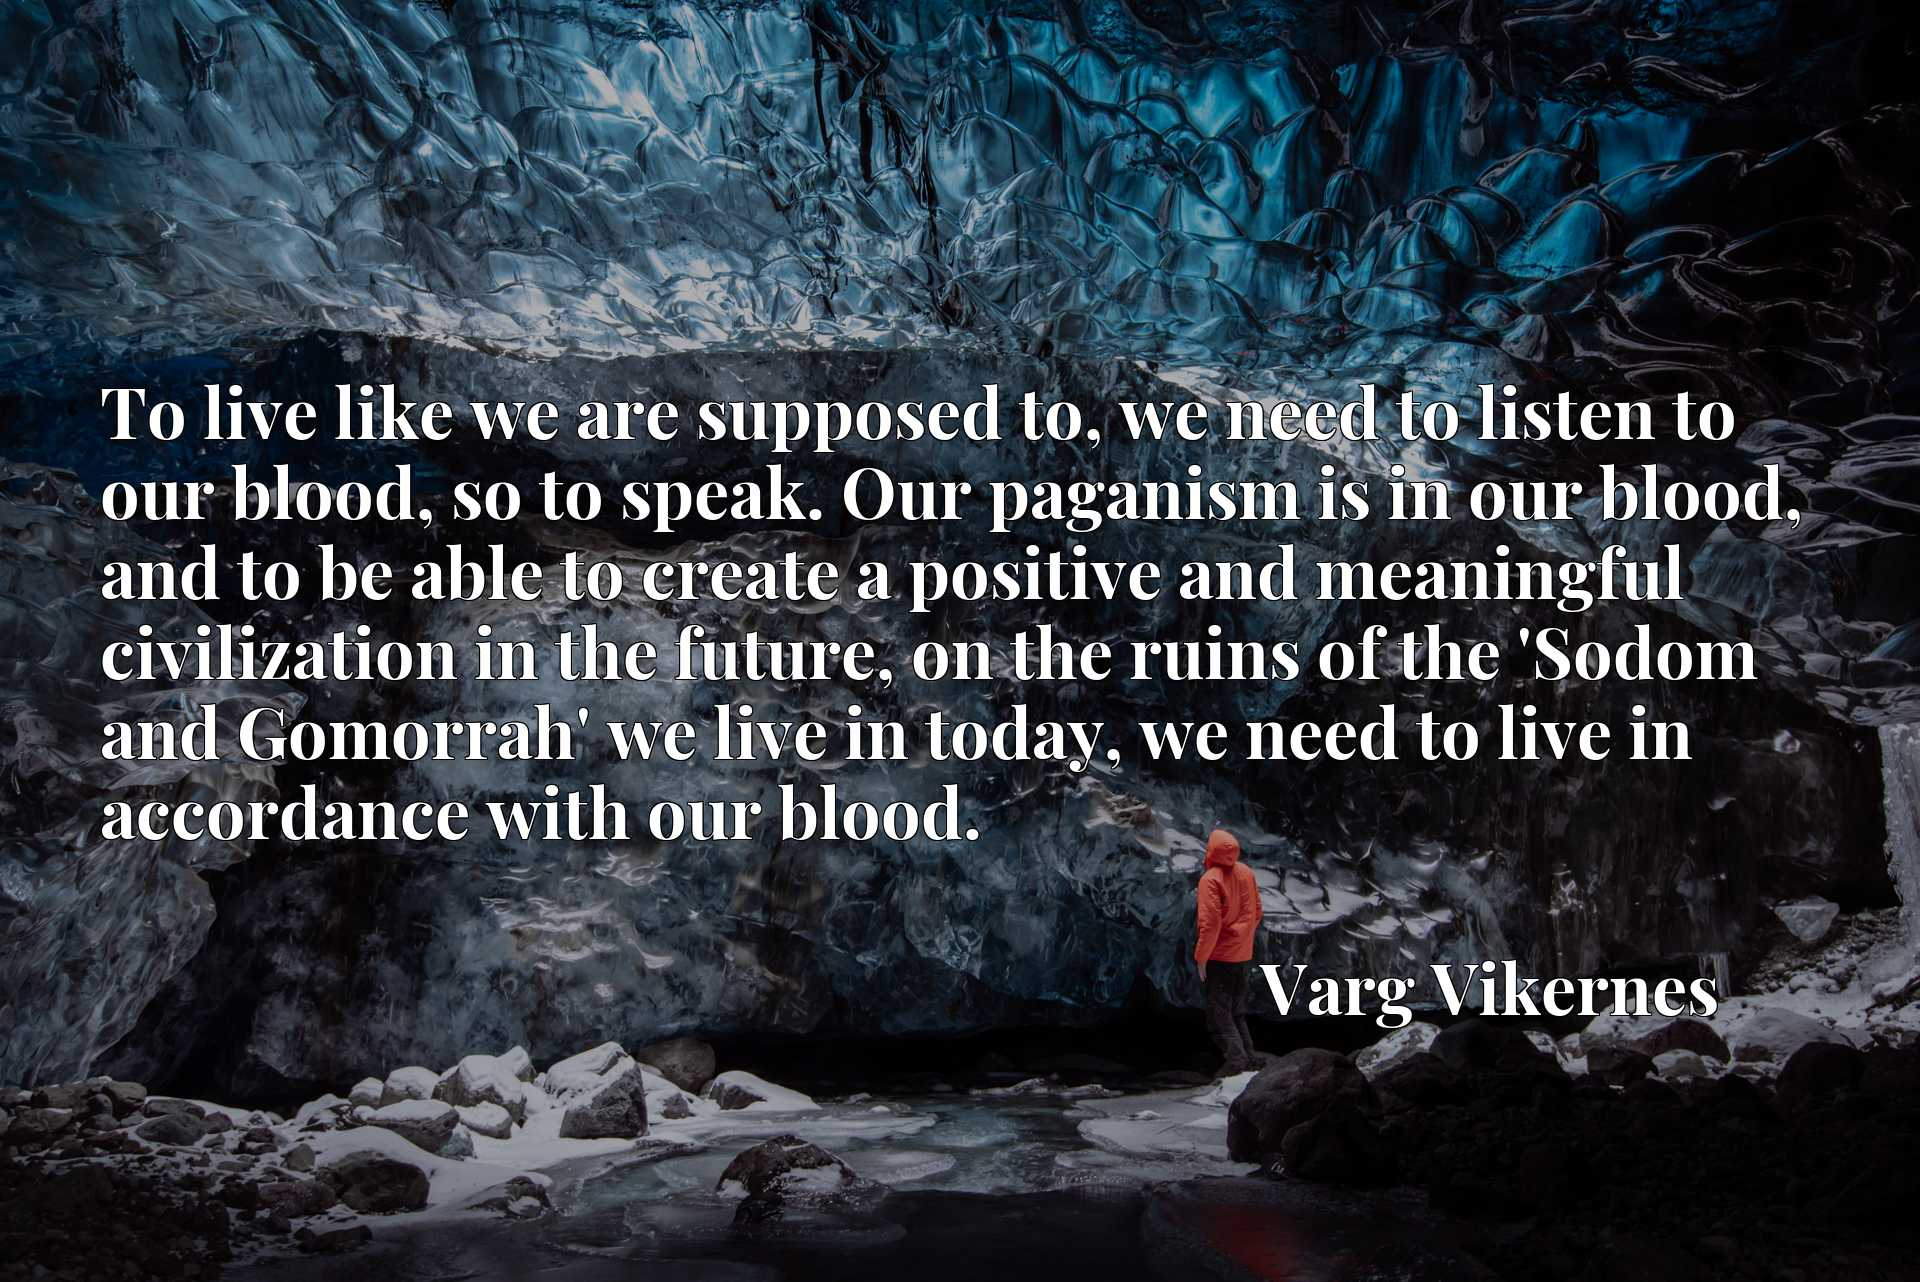 To live like we are supposed to, we need to listen to our blood, so to speak. Our paganism is in our blood, and to be able to create a positive and meaningful civilization in the future, on the ruins of the 'Sodom and Gomorrah' we live in today, we need to live in accordance with our blood.